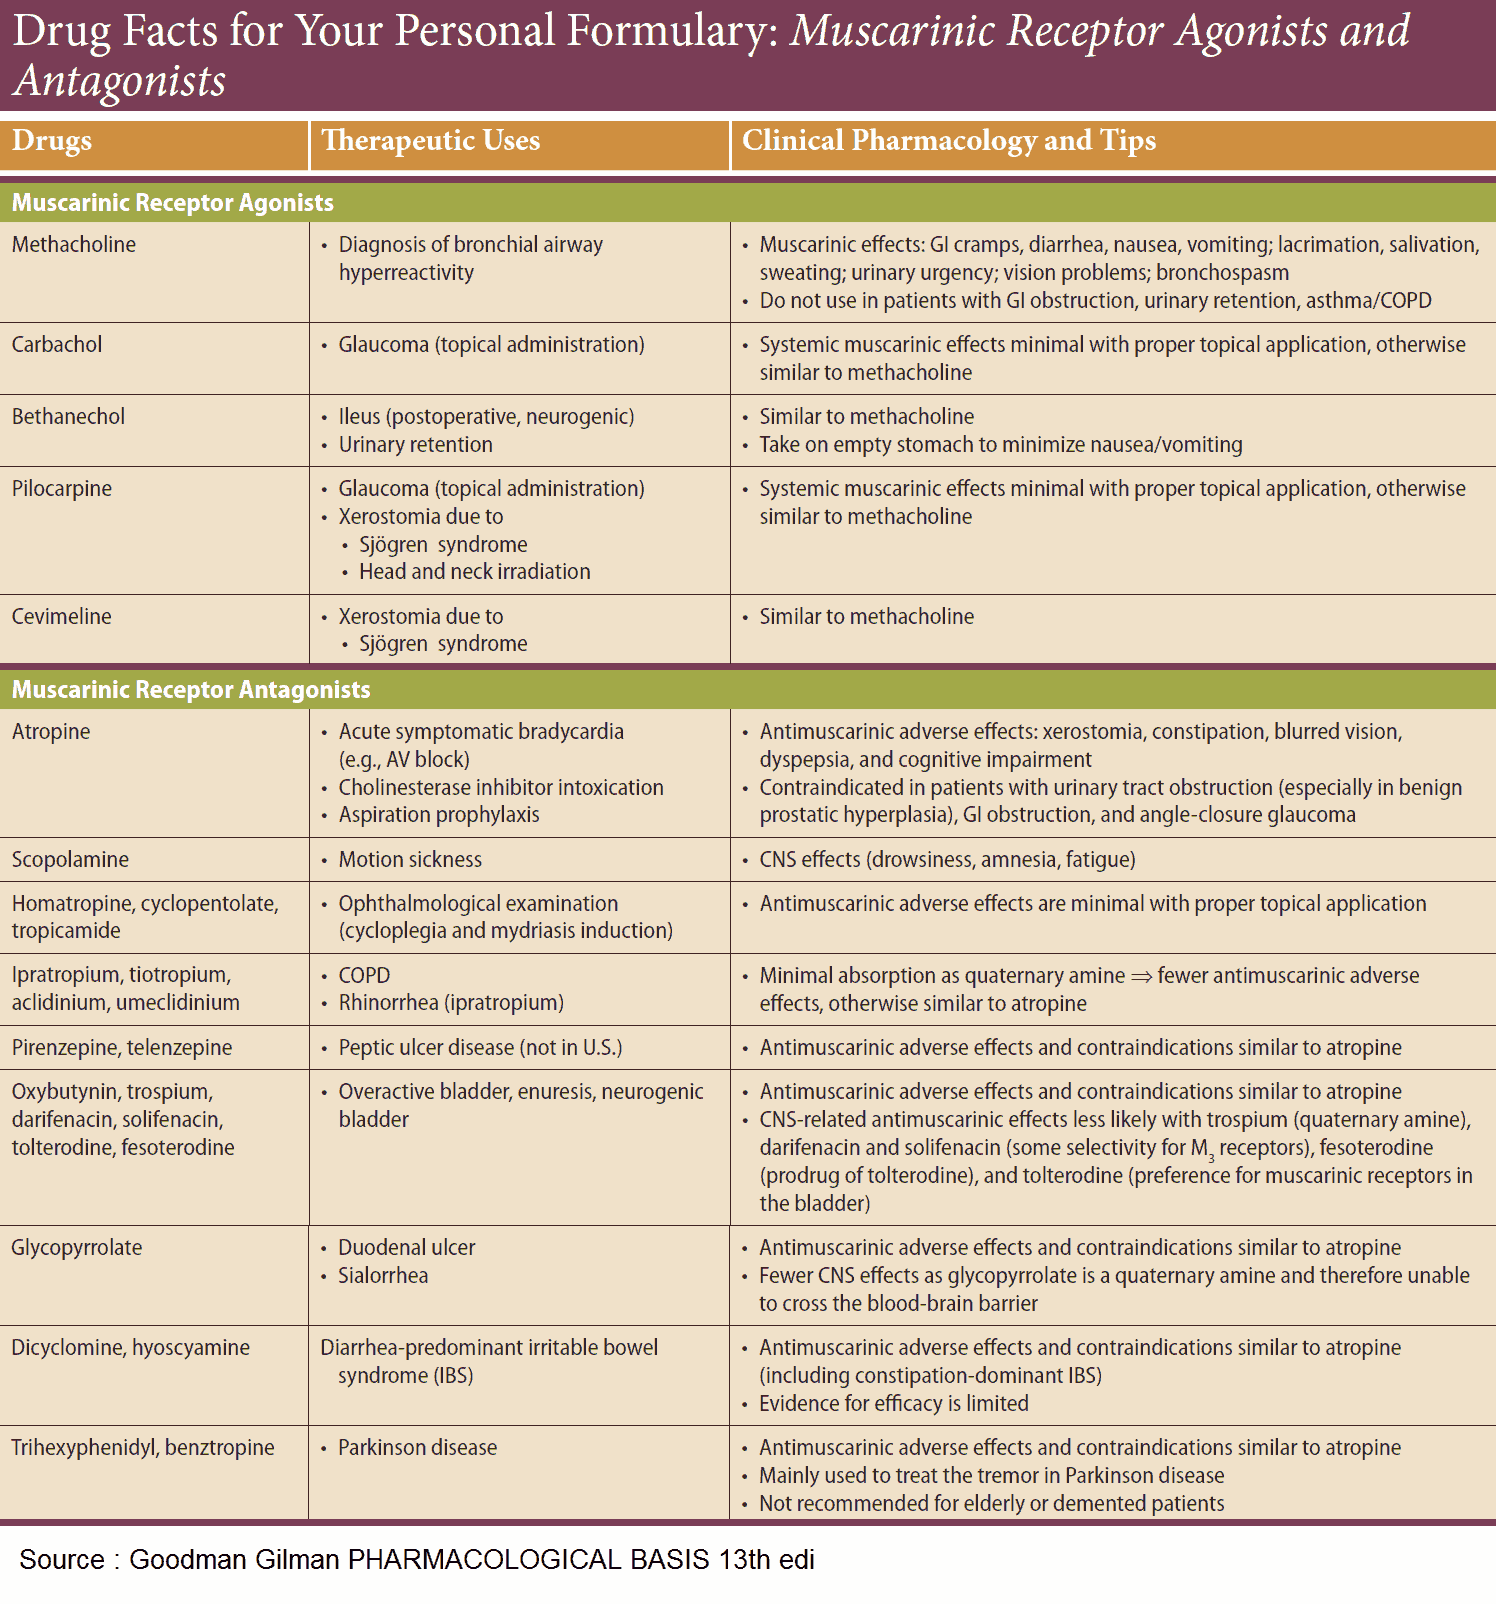 Muscarinic Receptor Agonists and Antagonists